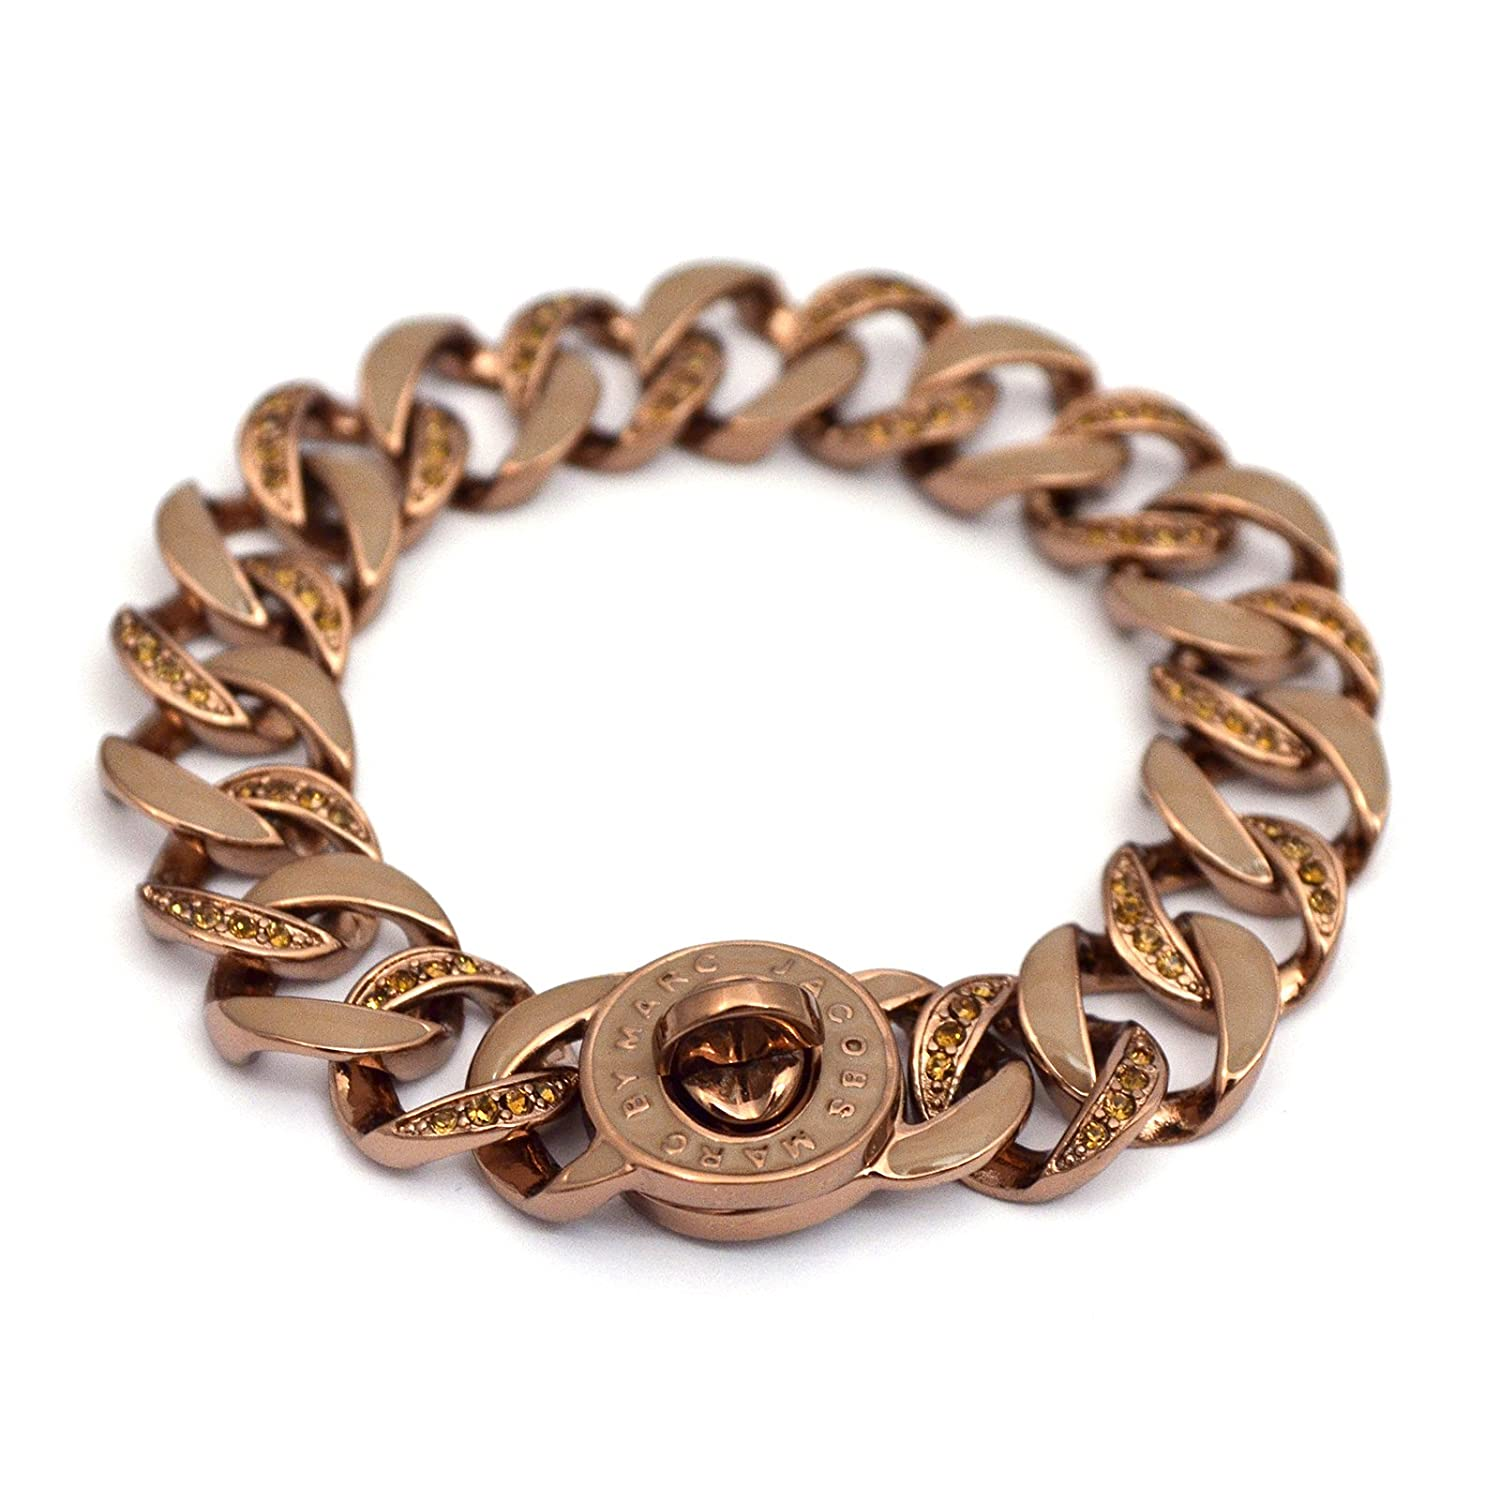 79aae89dd5f Marc by Marc Jacobs Turnlock Small Katie Bracelet Encrusted with Twist  Clasp Classic Enamel-Brown/Copper: Marc Jacobs: Amazon.co.uk: Jewellery